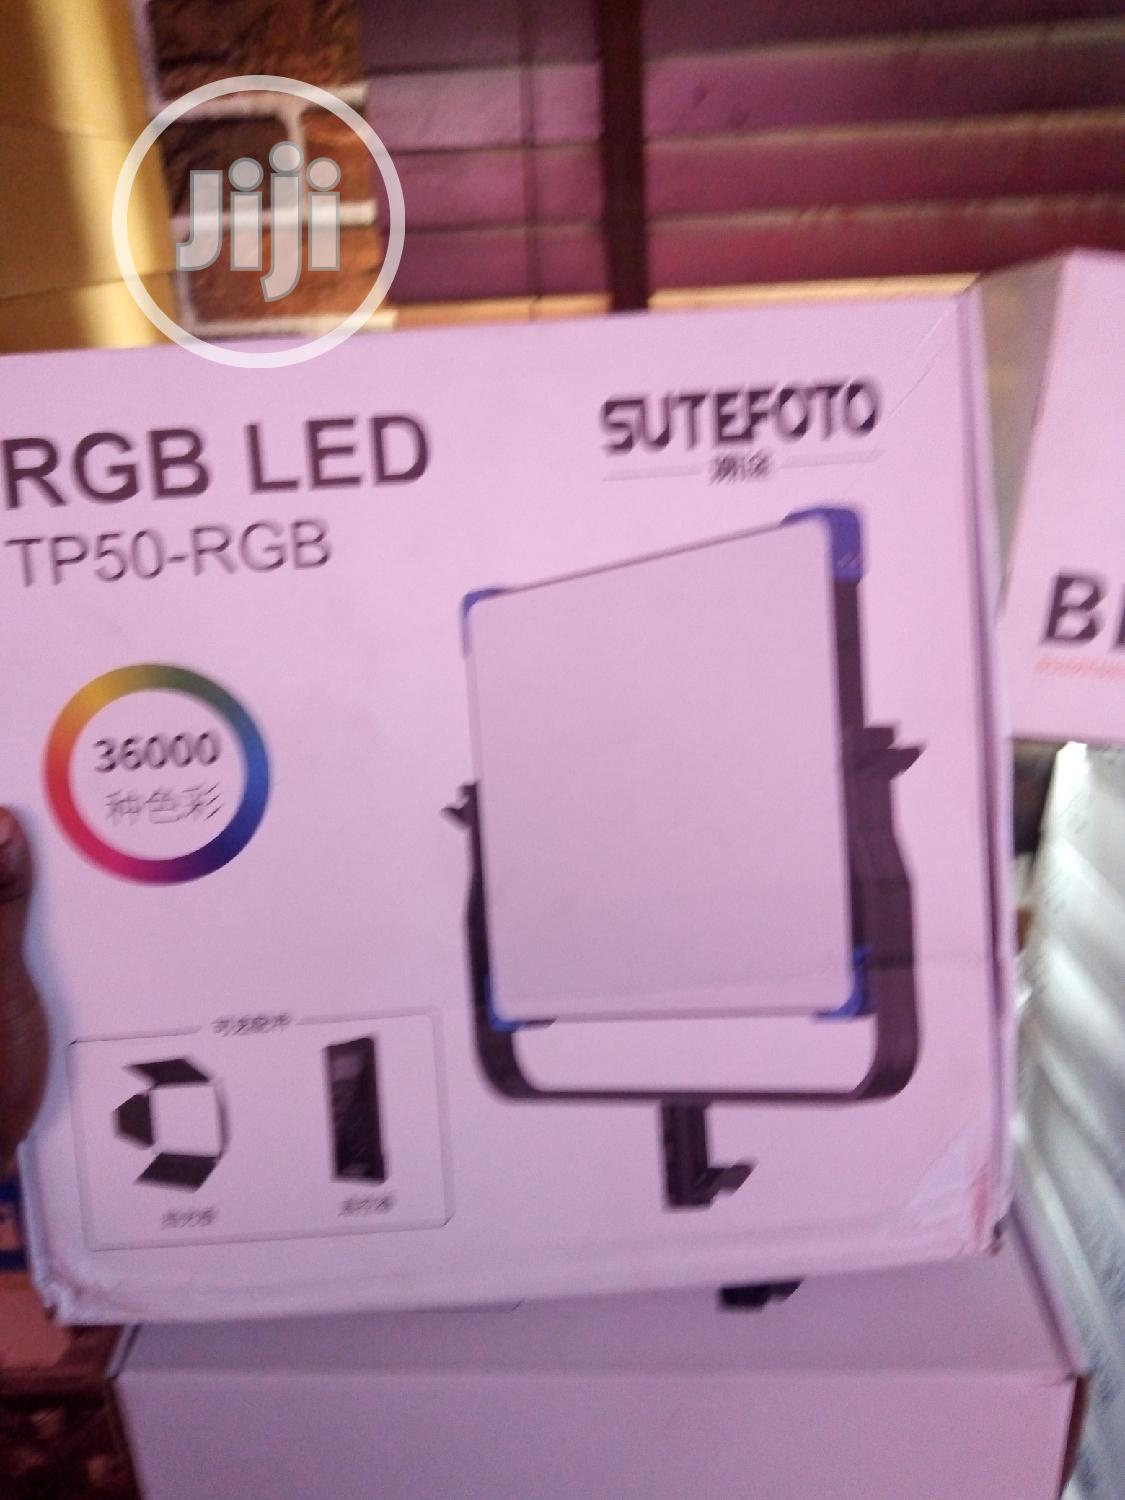 Sutefoto RGB Led Video Light | Accessories & Supplies for Electronics for sale in Lekki, Lagos State, Nigeria